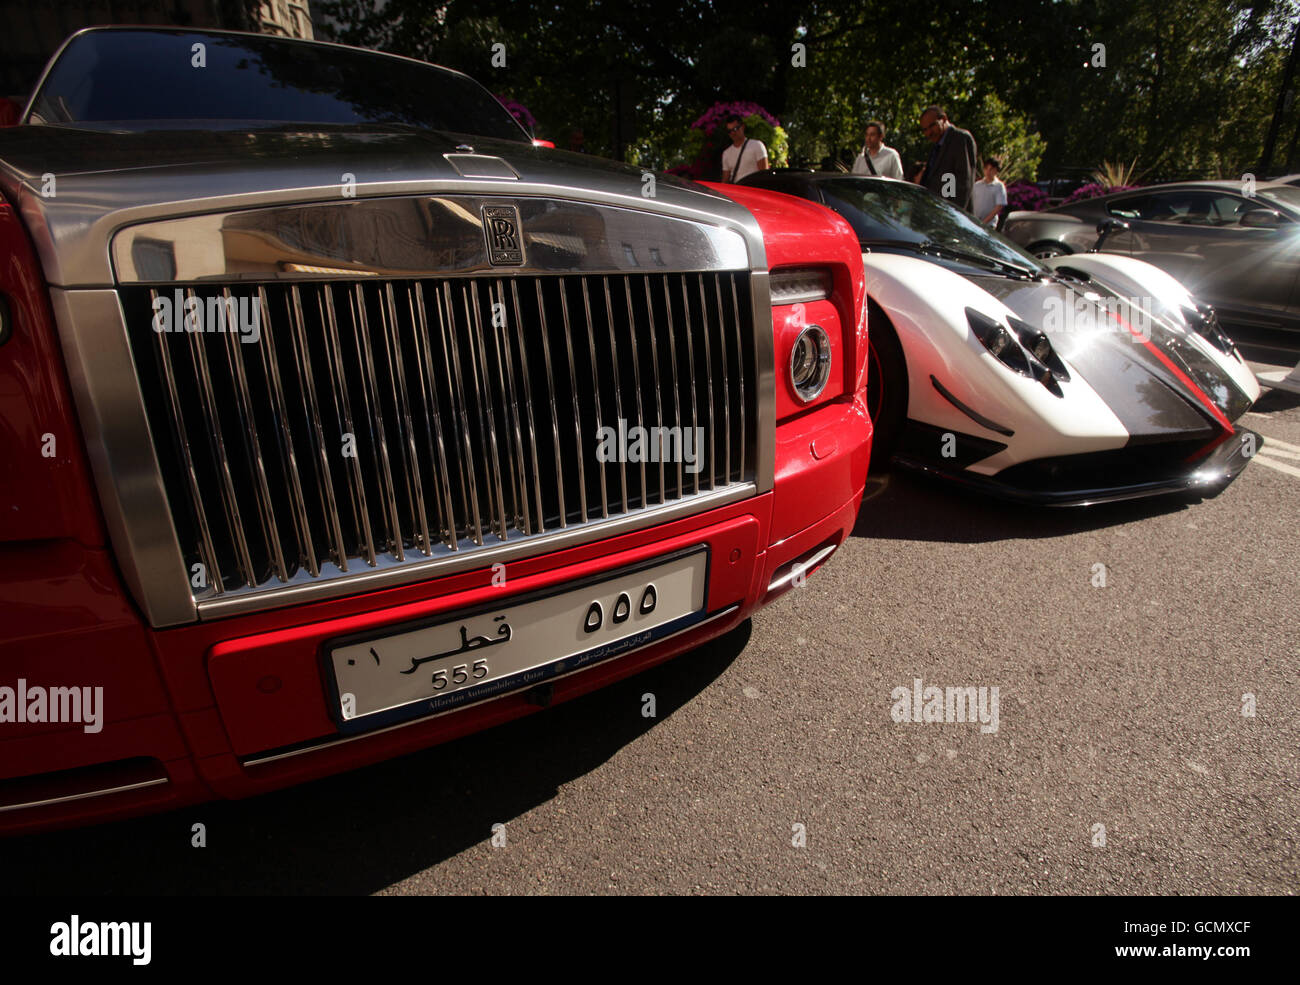 Supercars In London Stock Photo Royalty Free Image Alamy